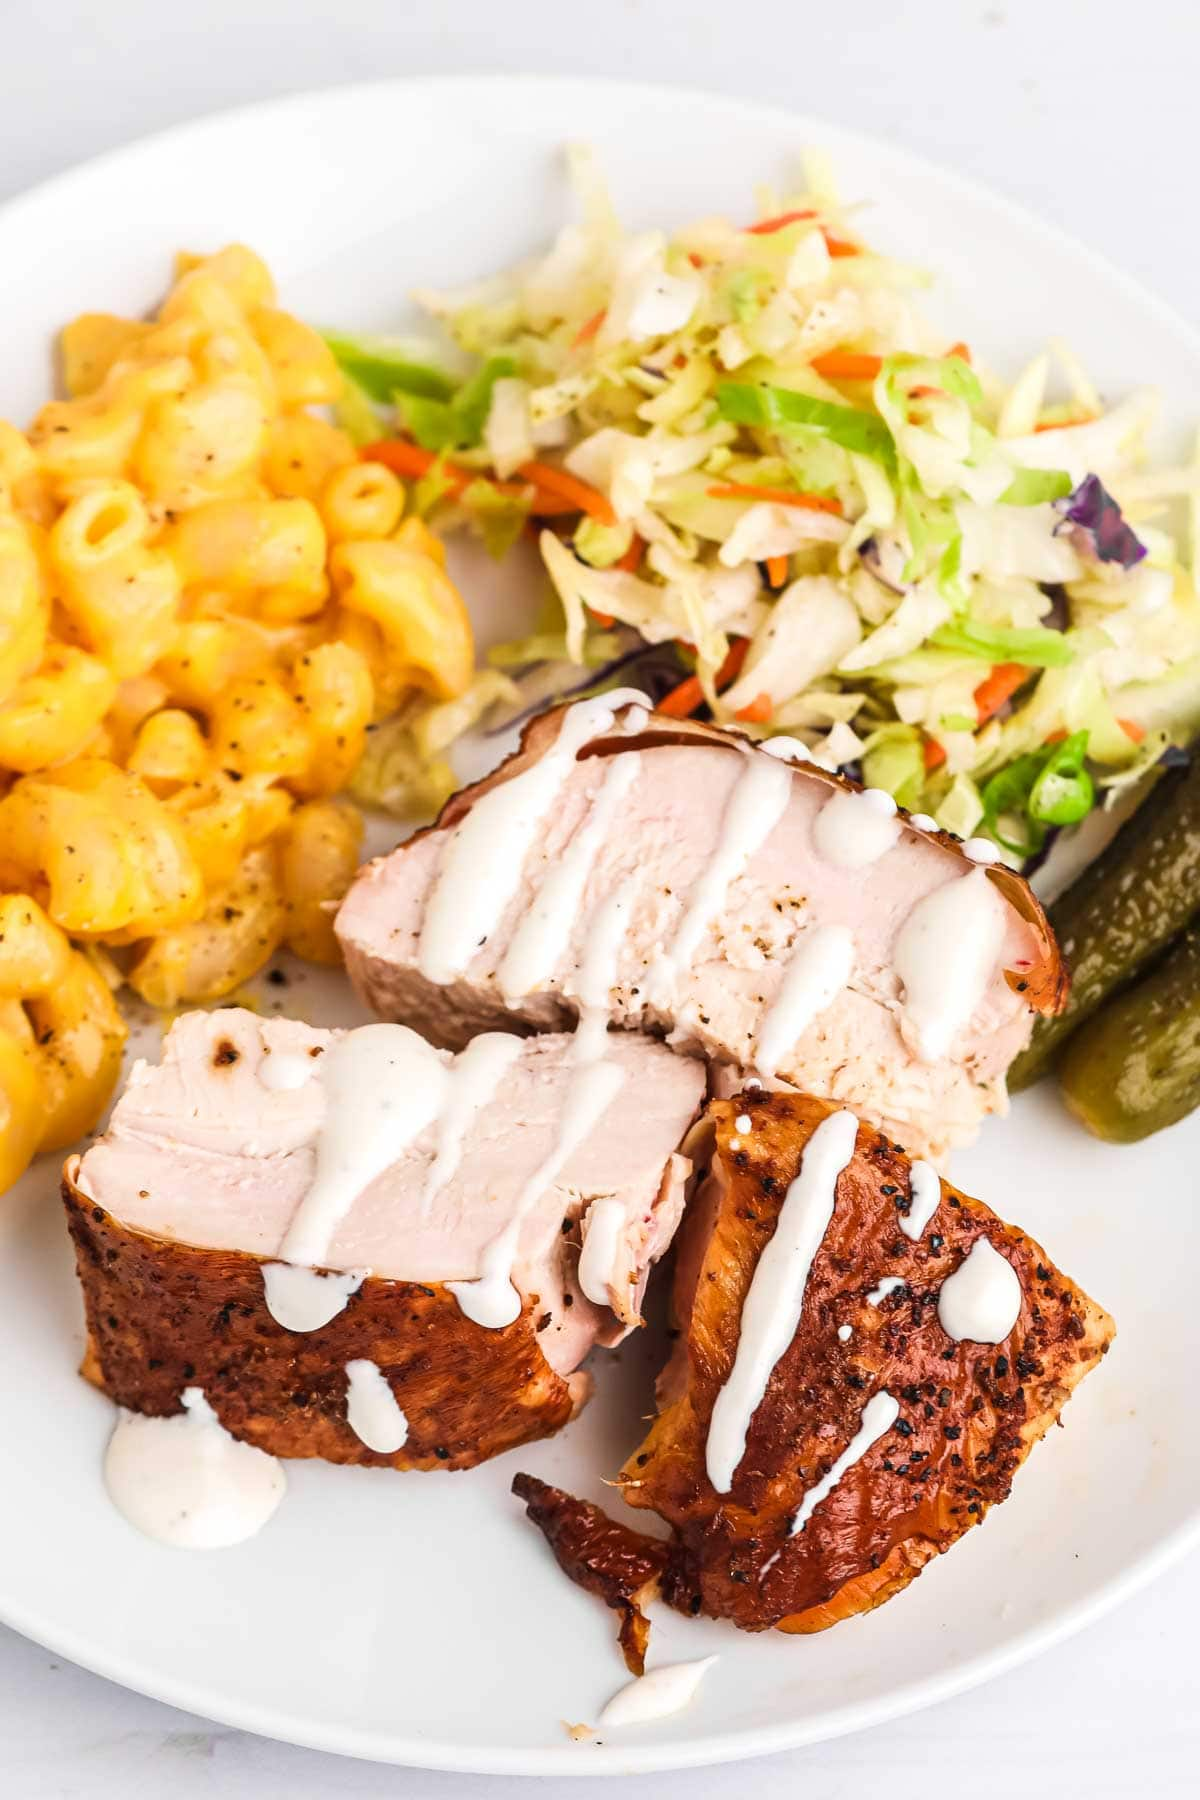 Sliced chicken breast served on a plate drizzled with alabama white sauce, served with coleslaw and mac and cheese.